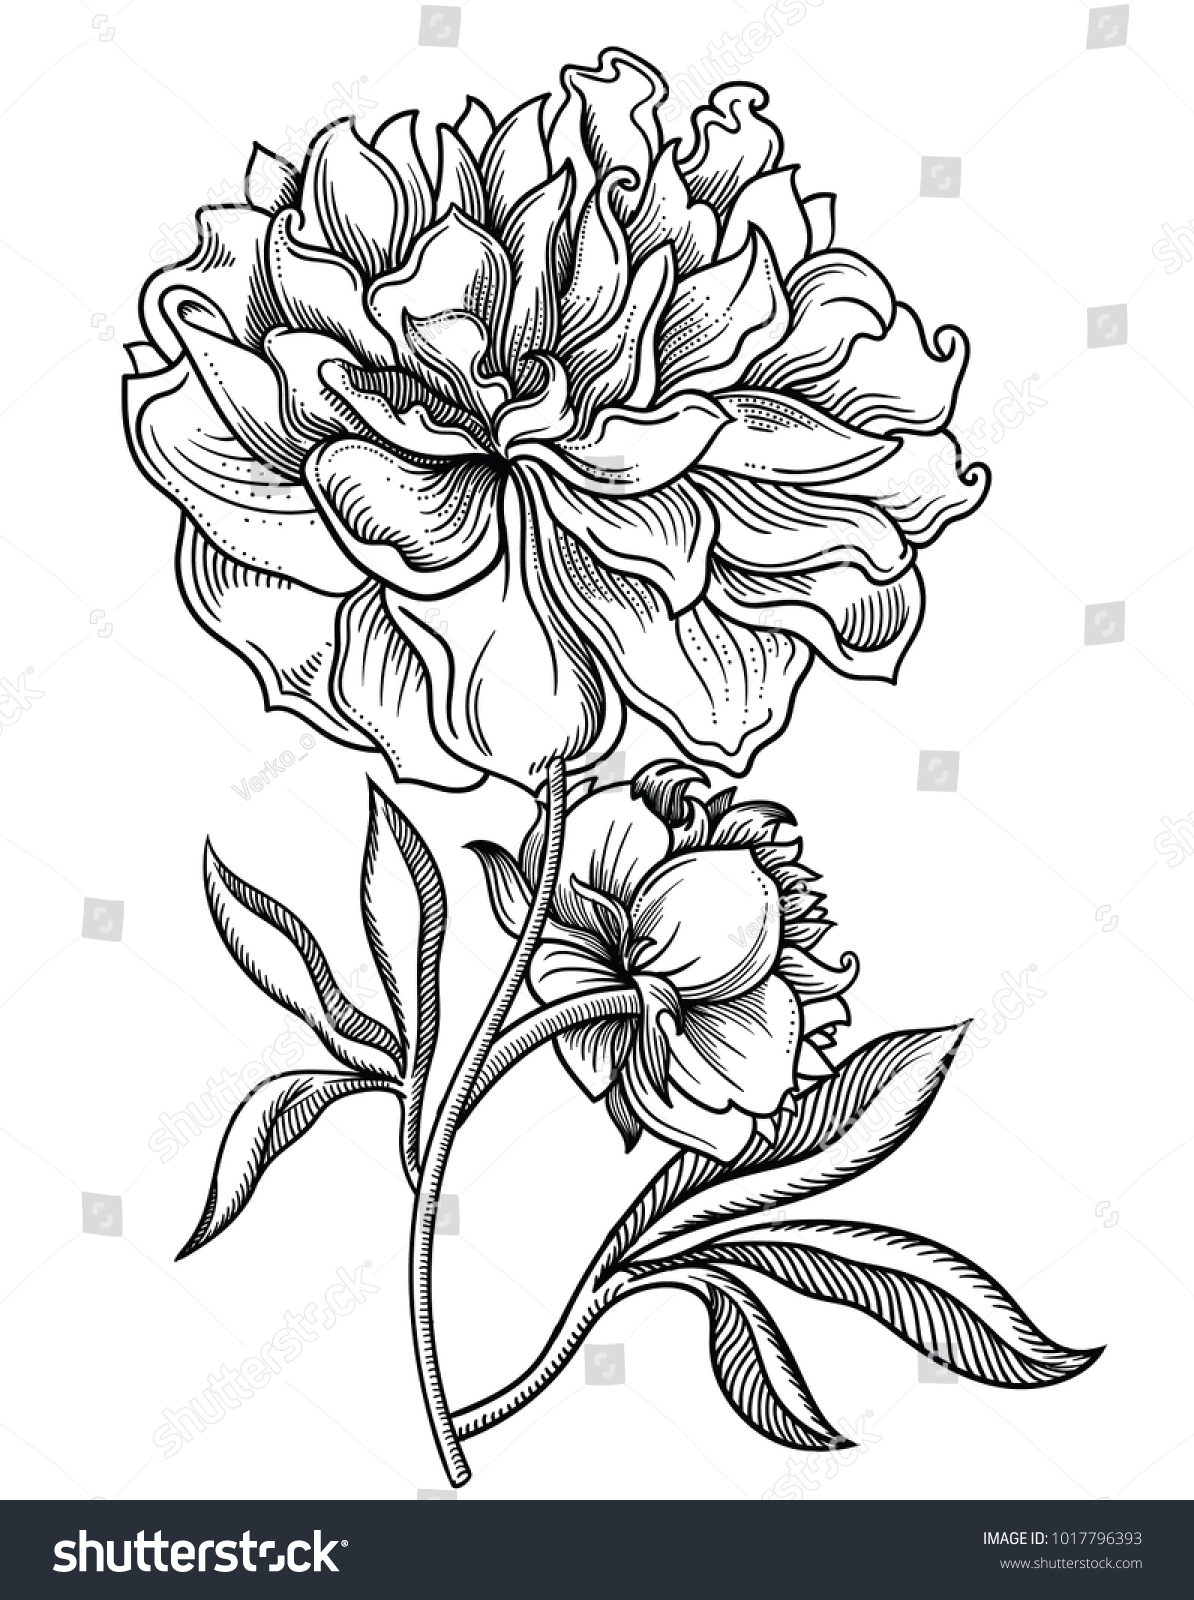 Blooming Forest Flowers Detailed Hand Drawn Vector Illustration